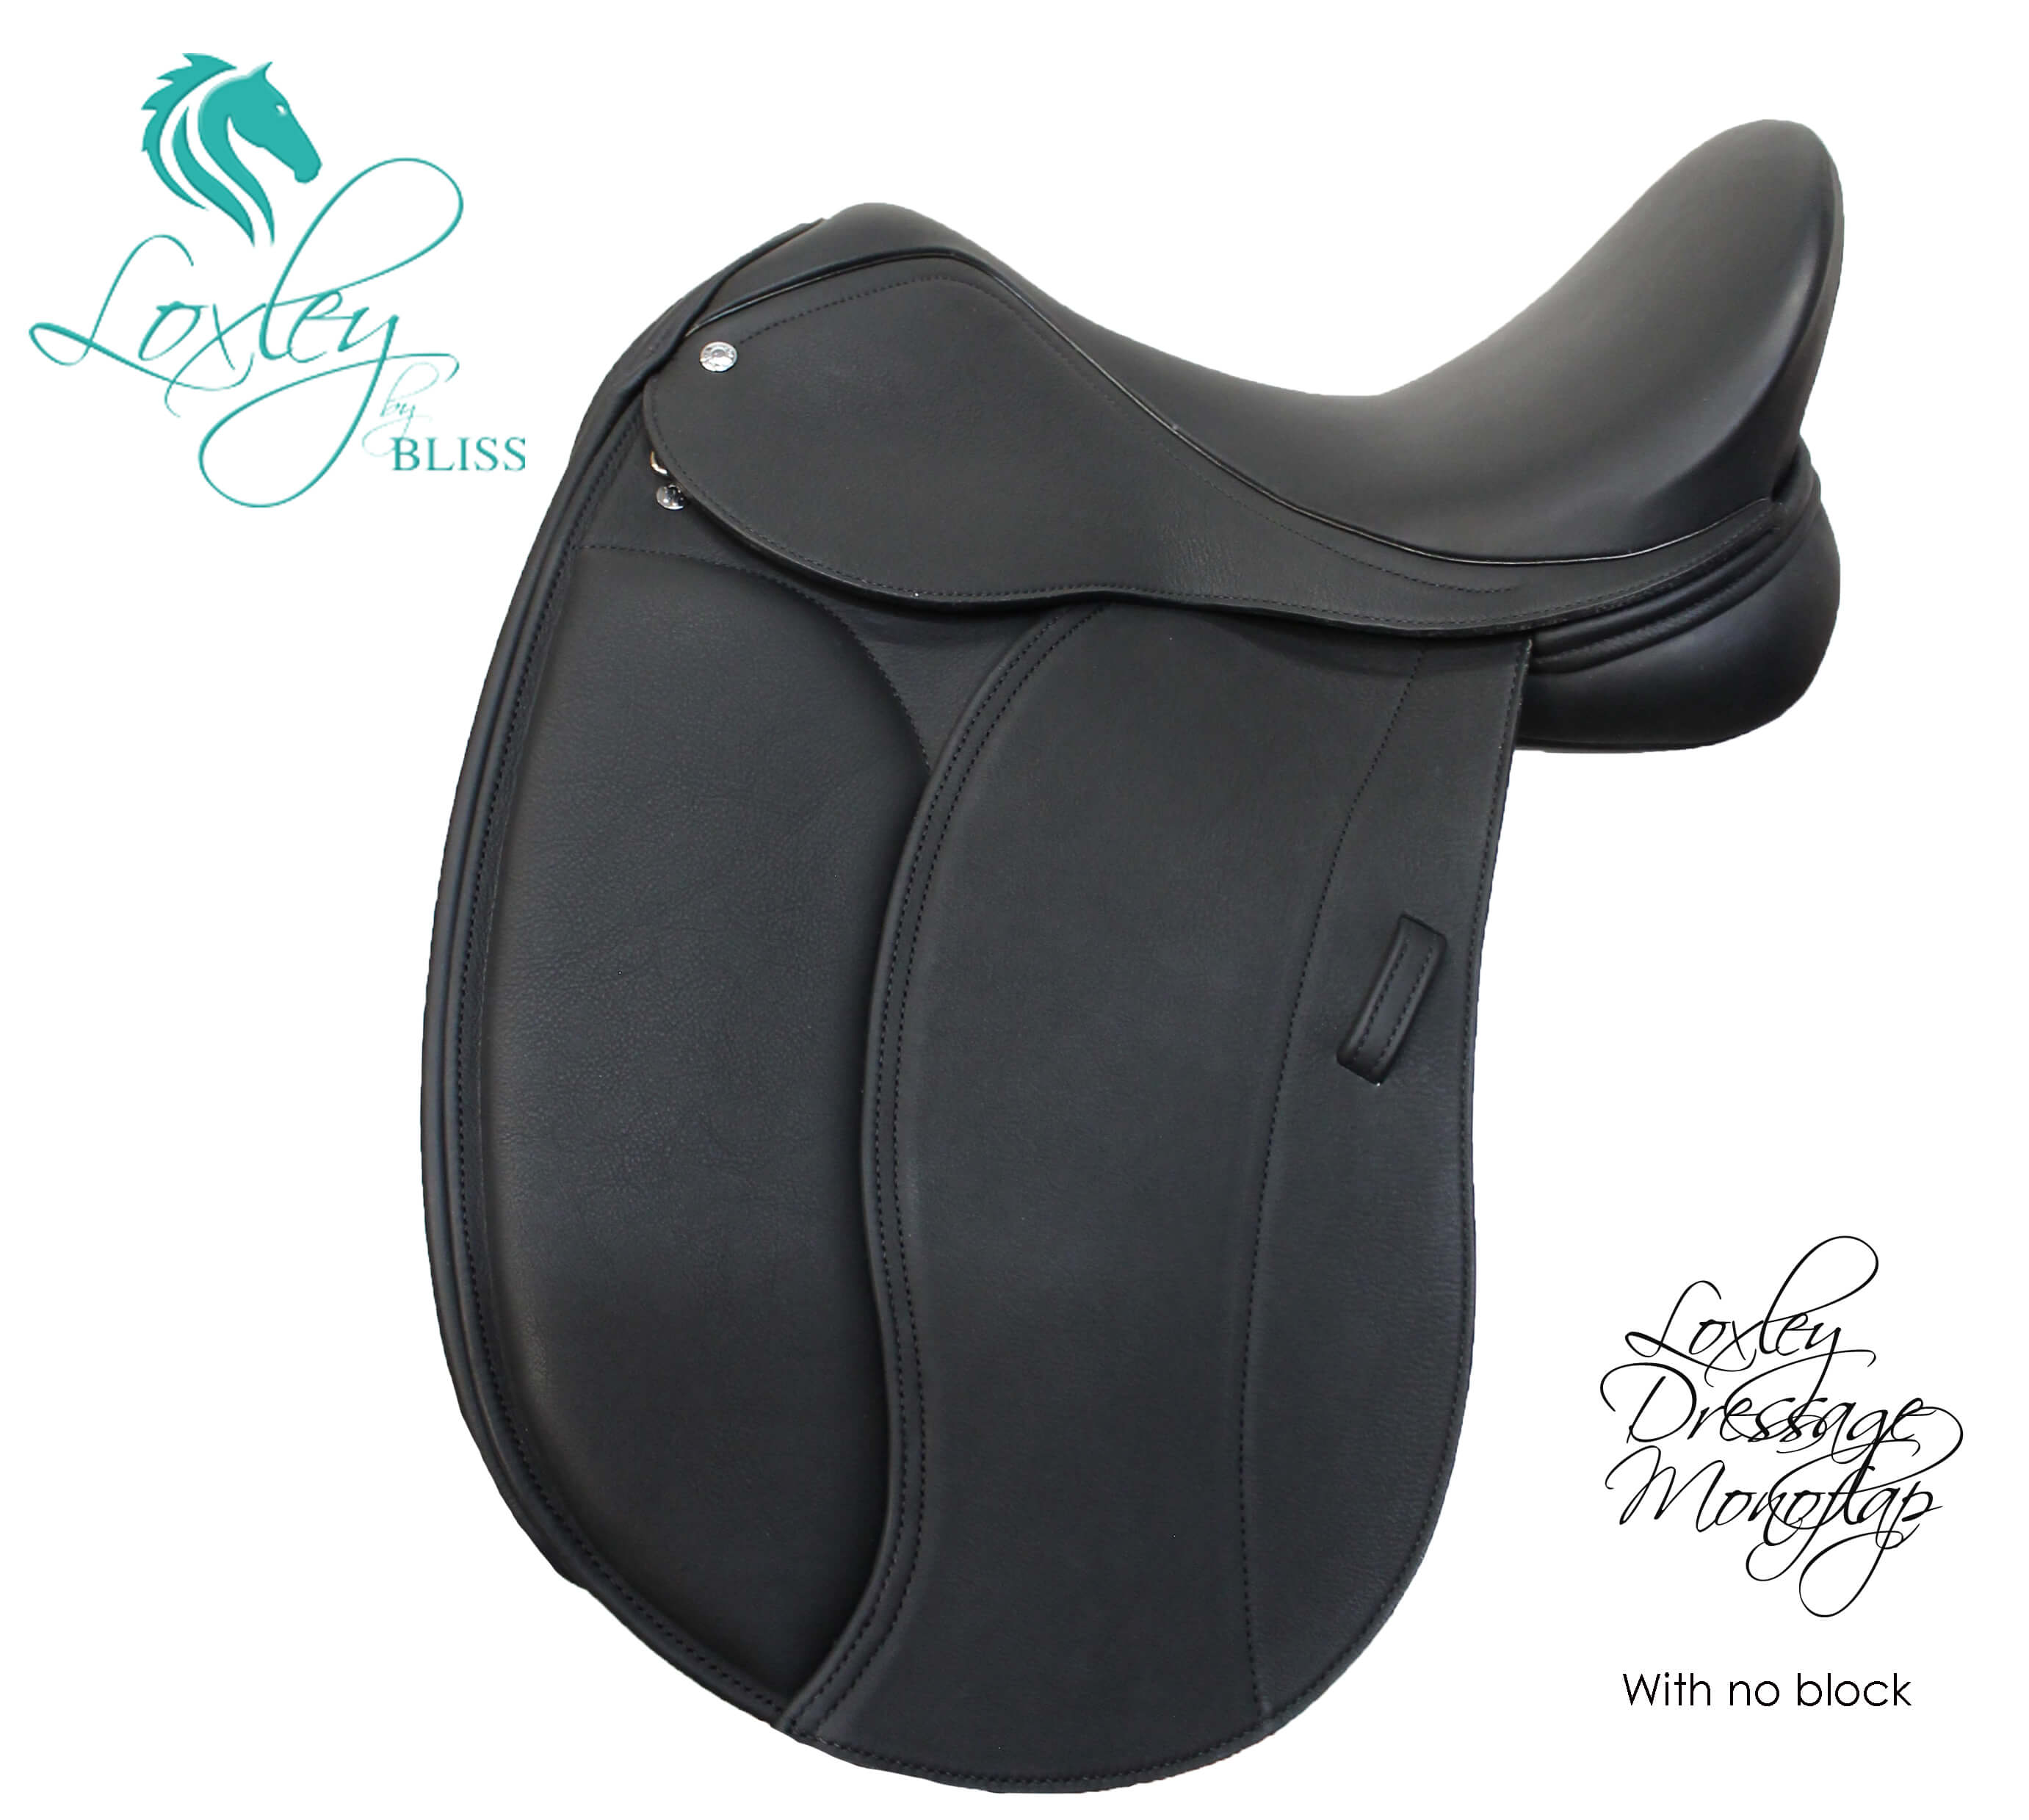 15 loxley dressage mono flap no block